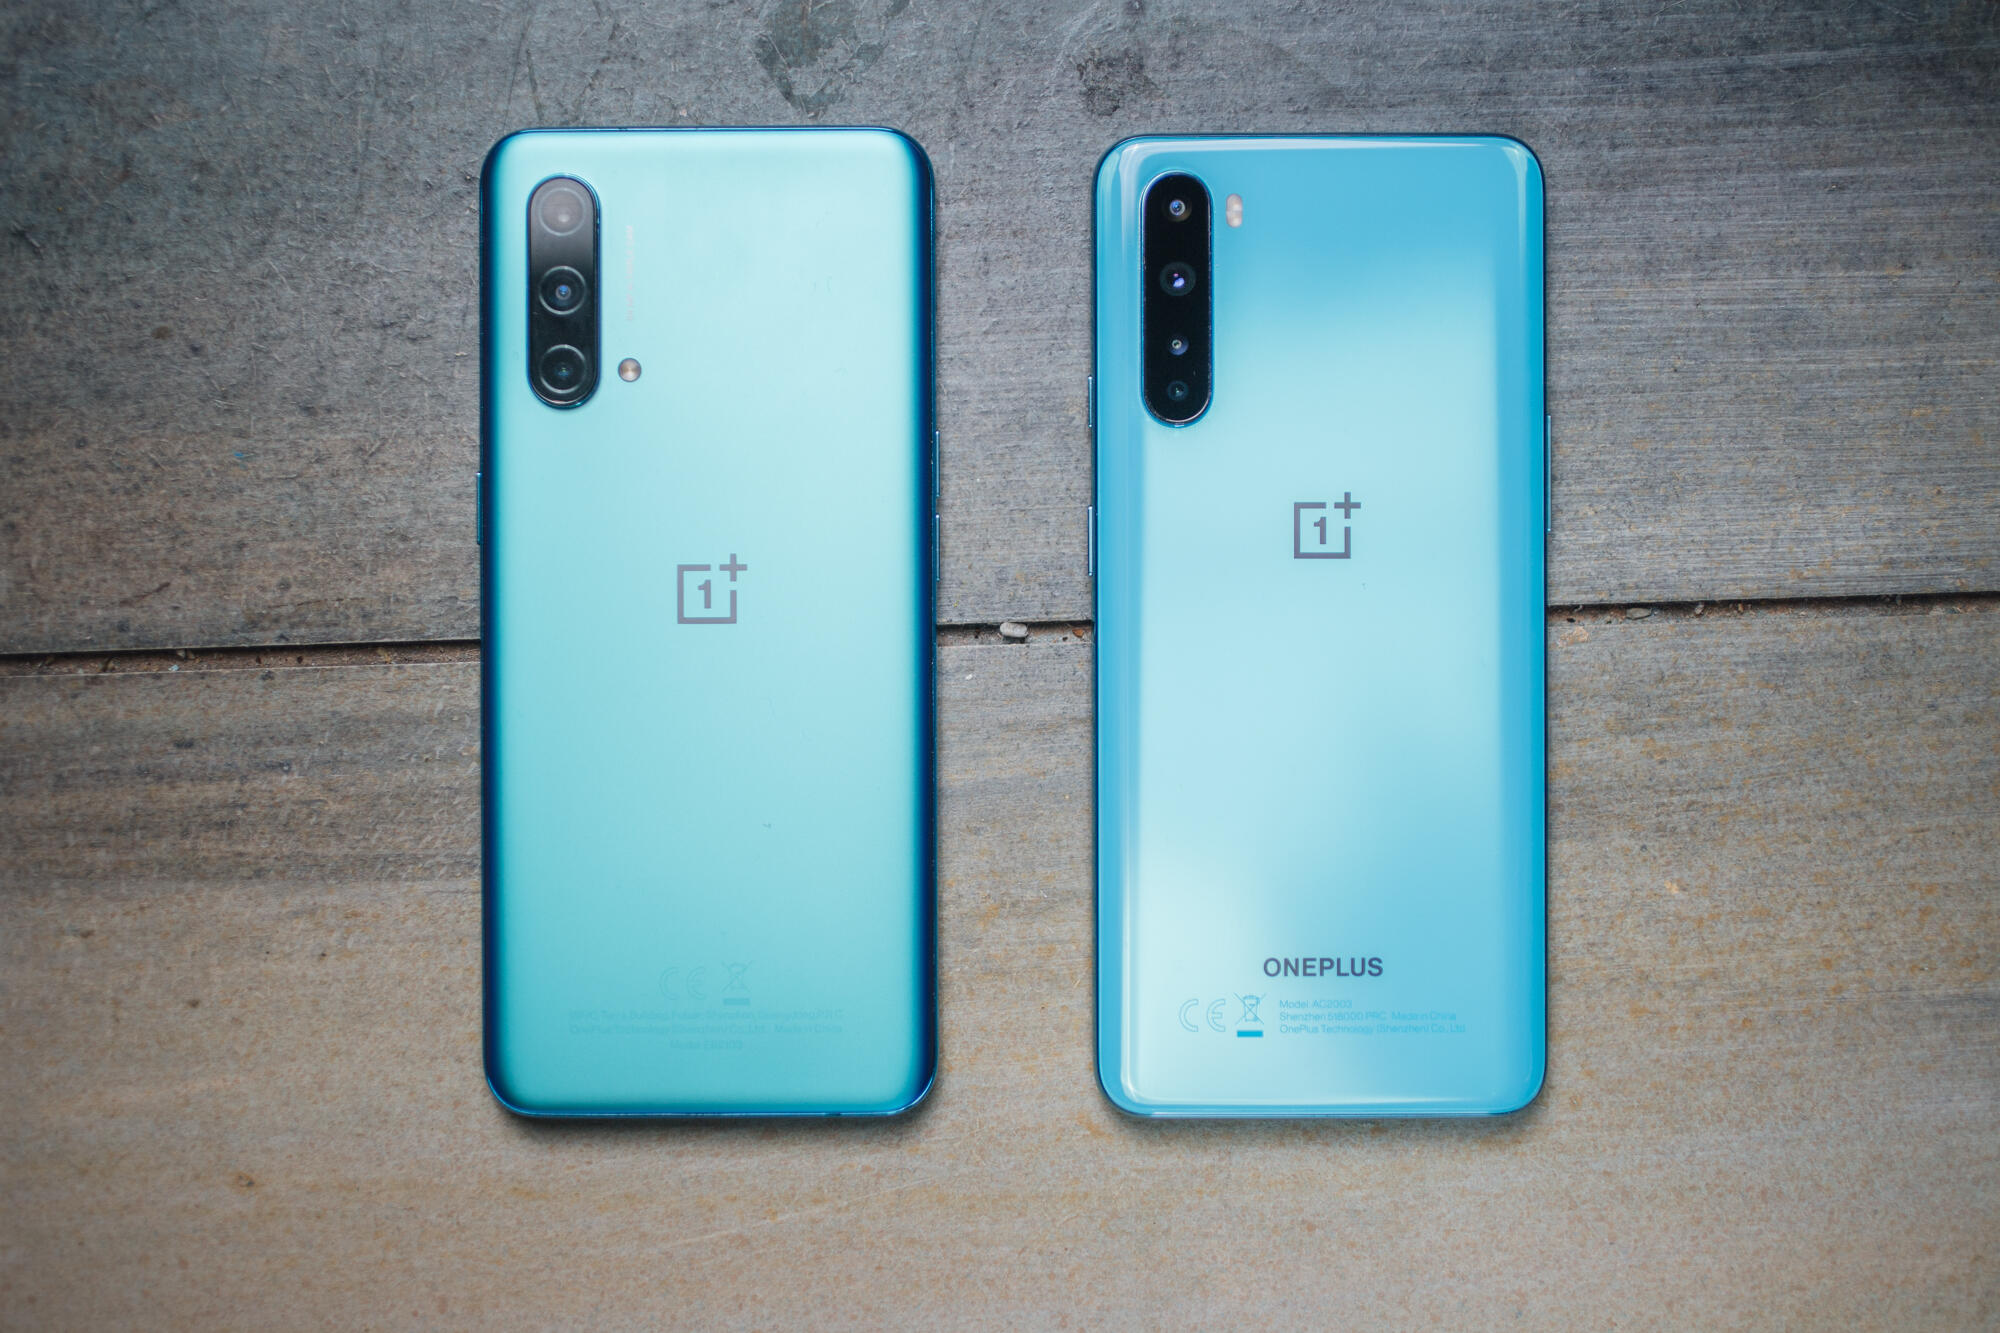 oneplus-nord-ce-review-product-13